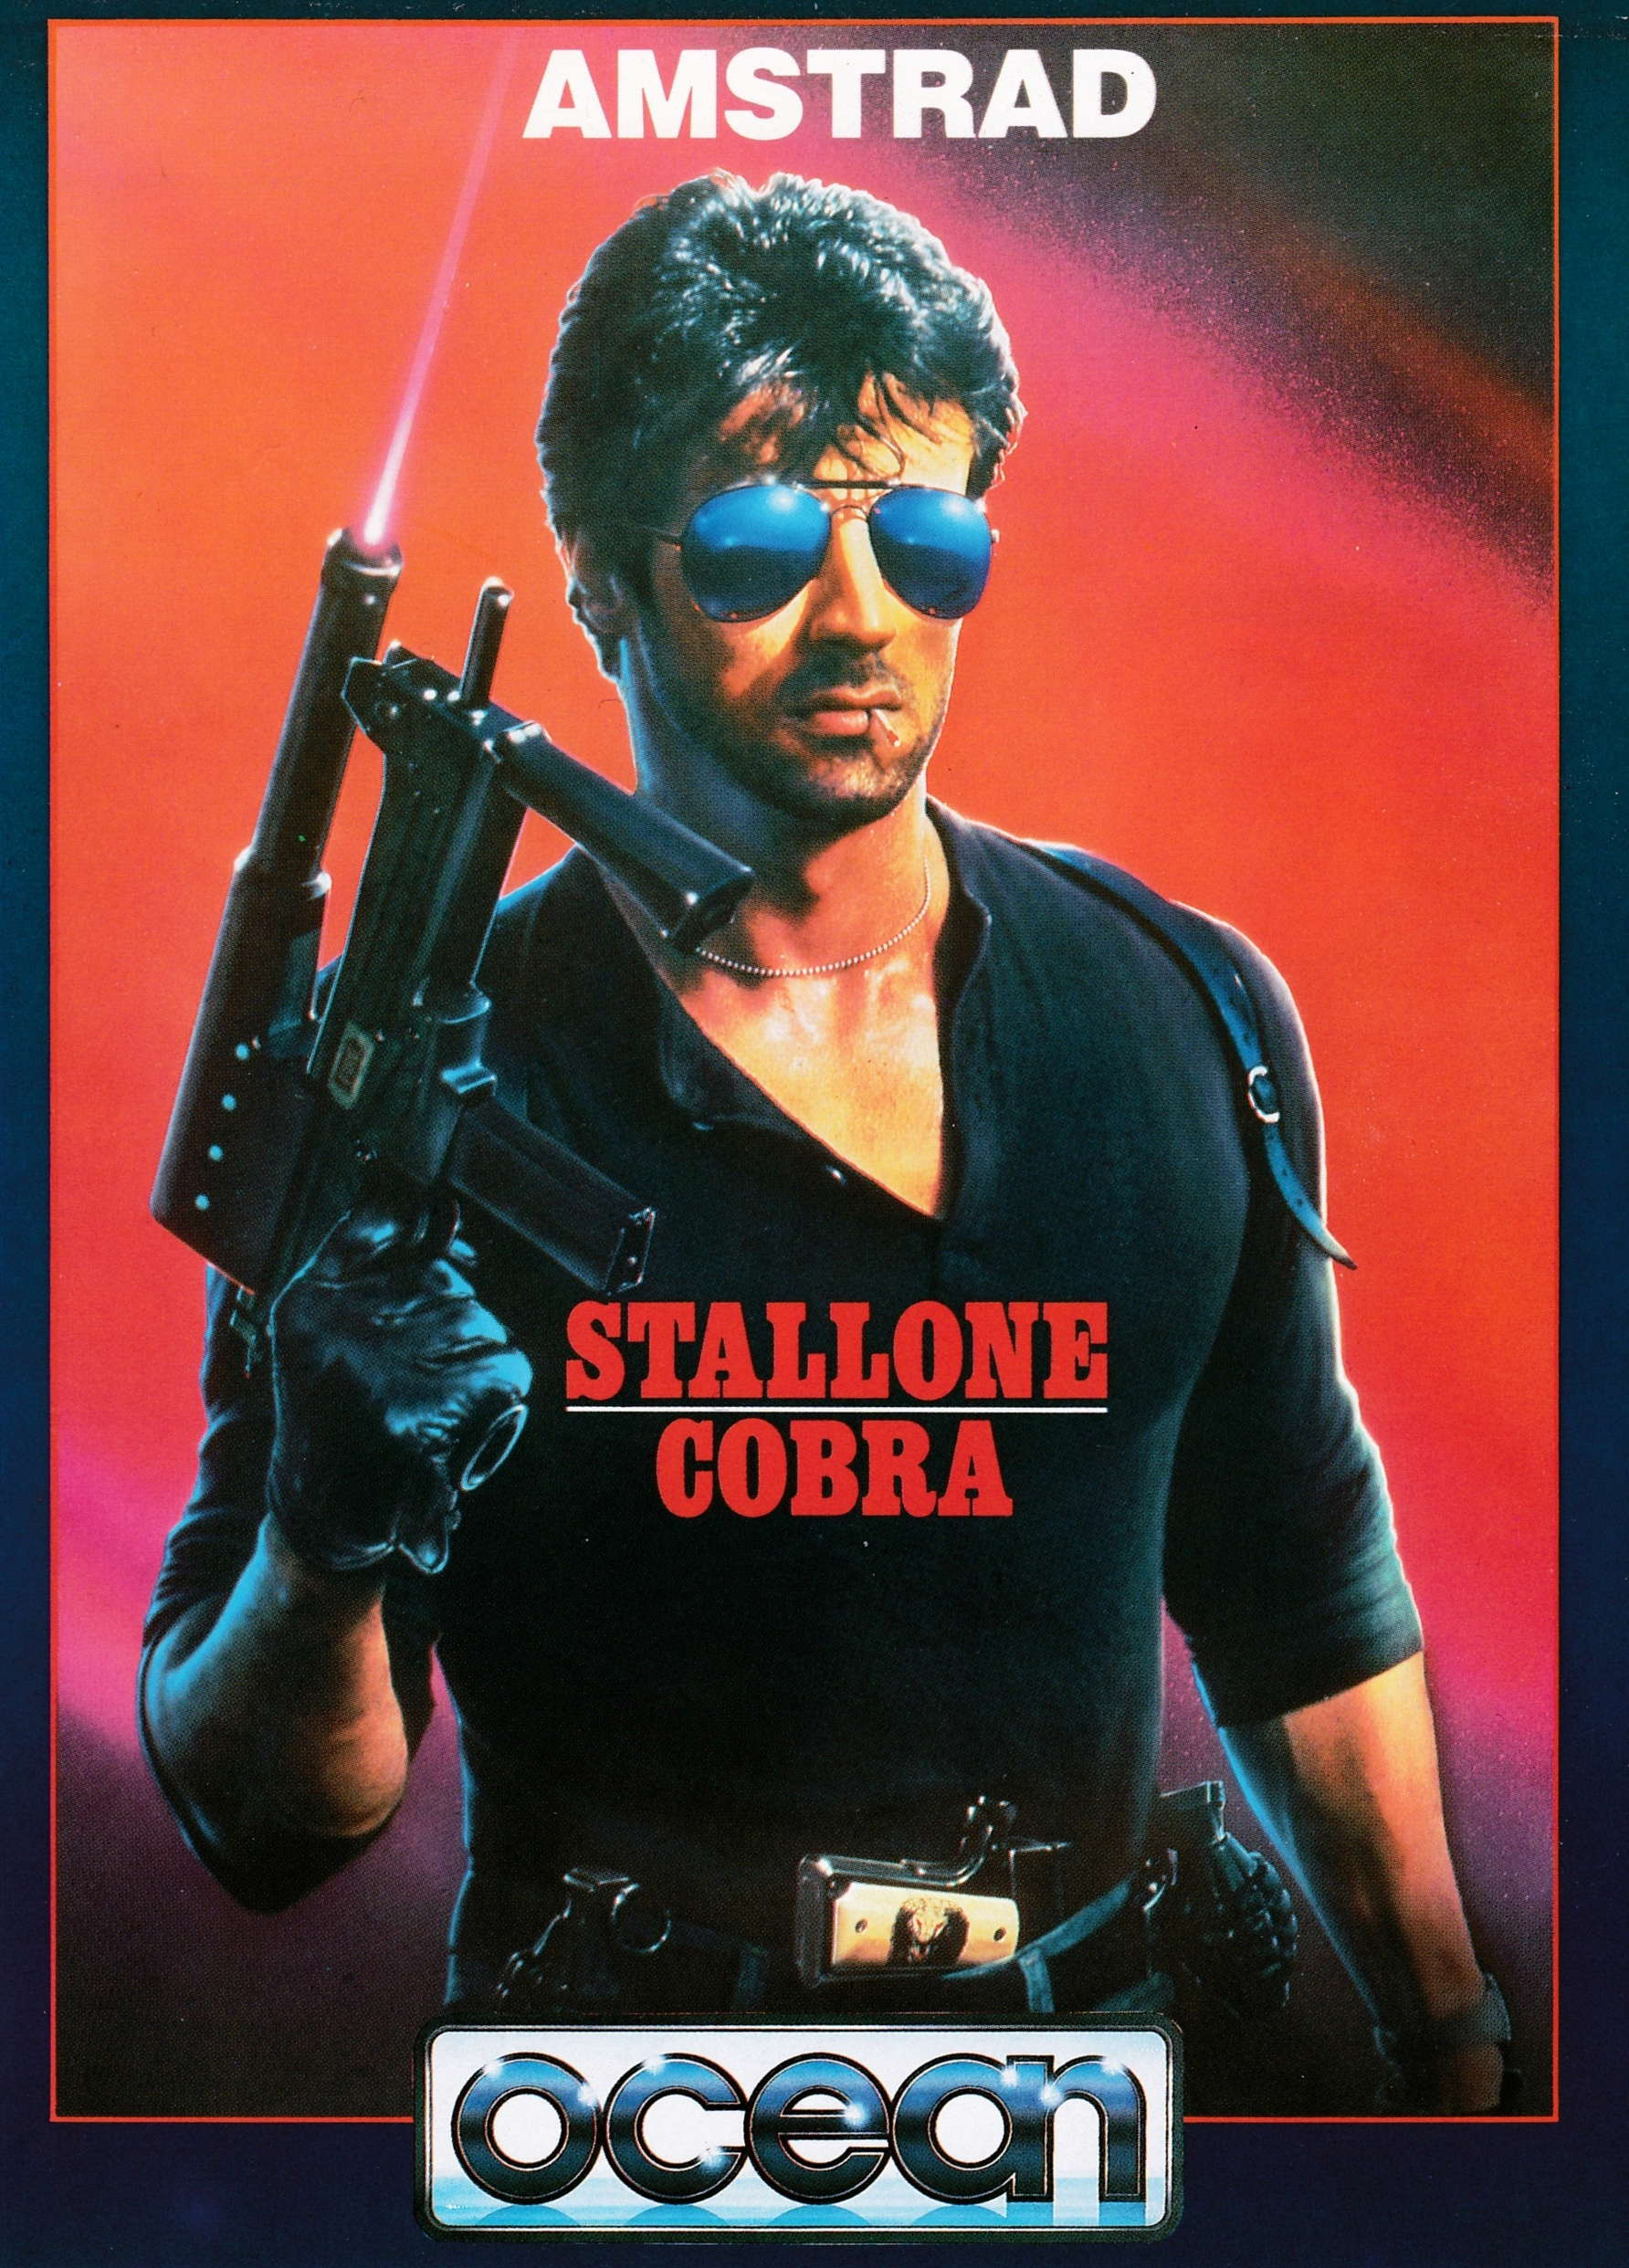 cover of the Amstrad CPC game Cobra Stallone  by GameBase CPC